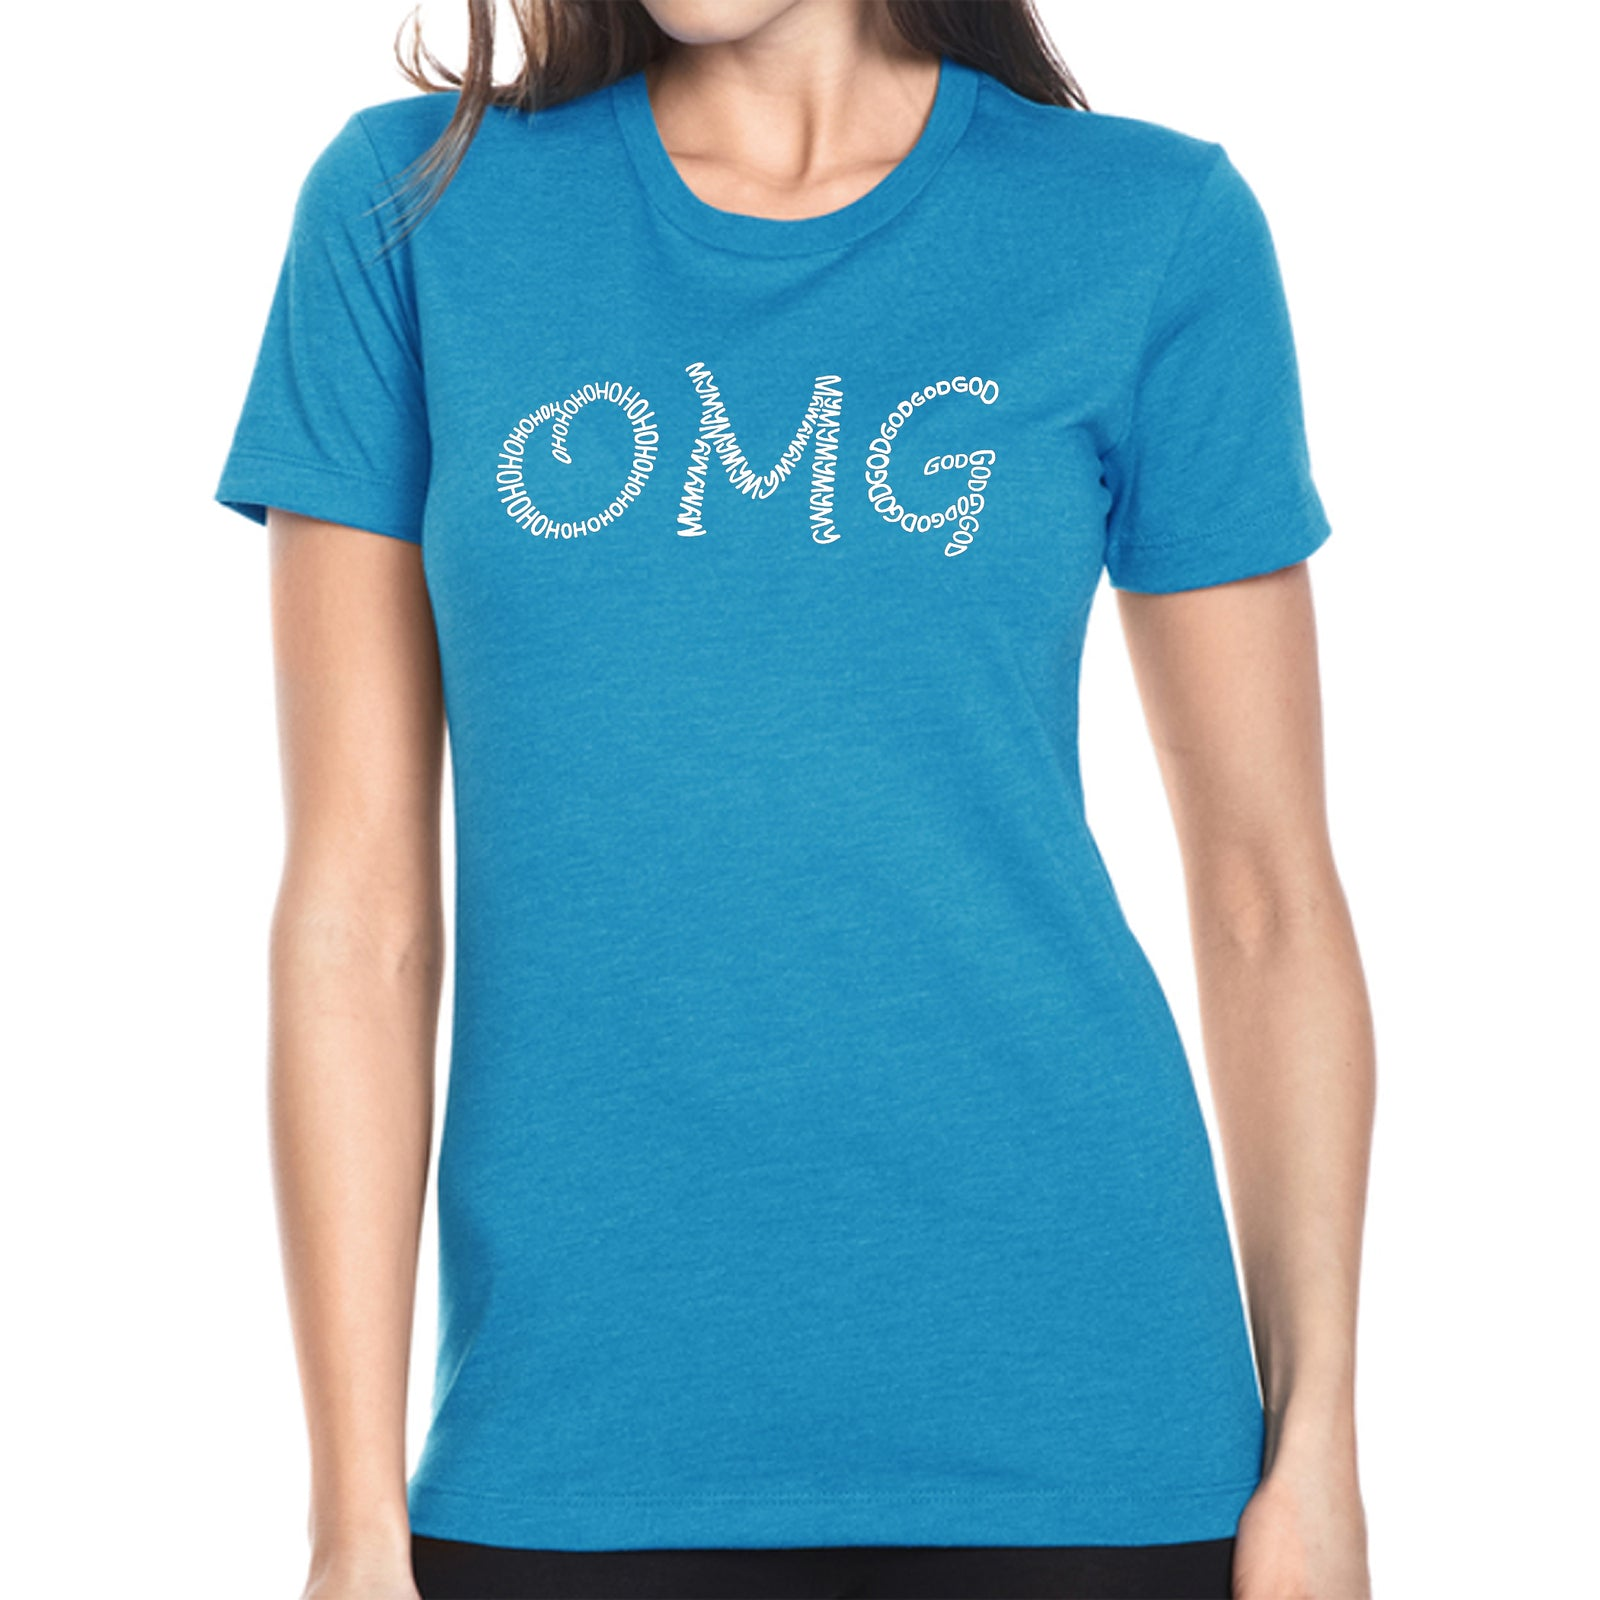 Women's Premium Blend Word Art T-shirt - OMG